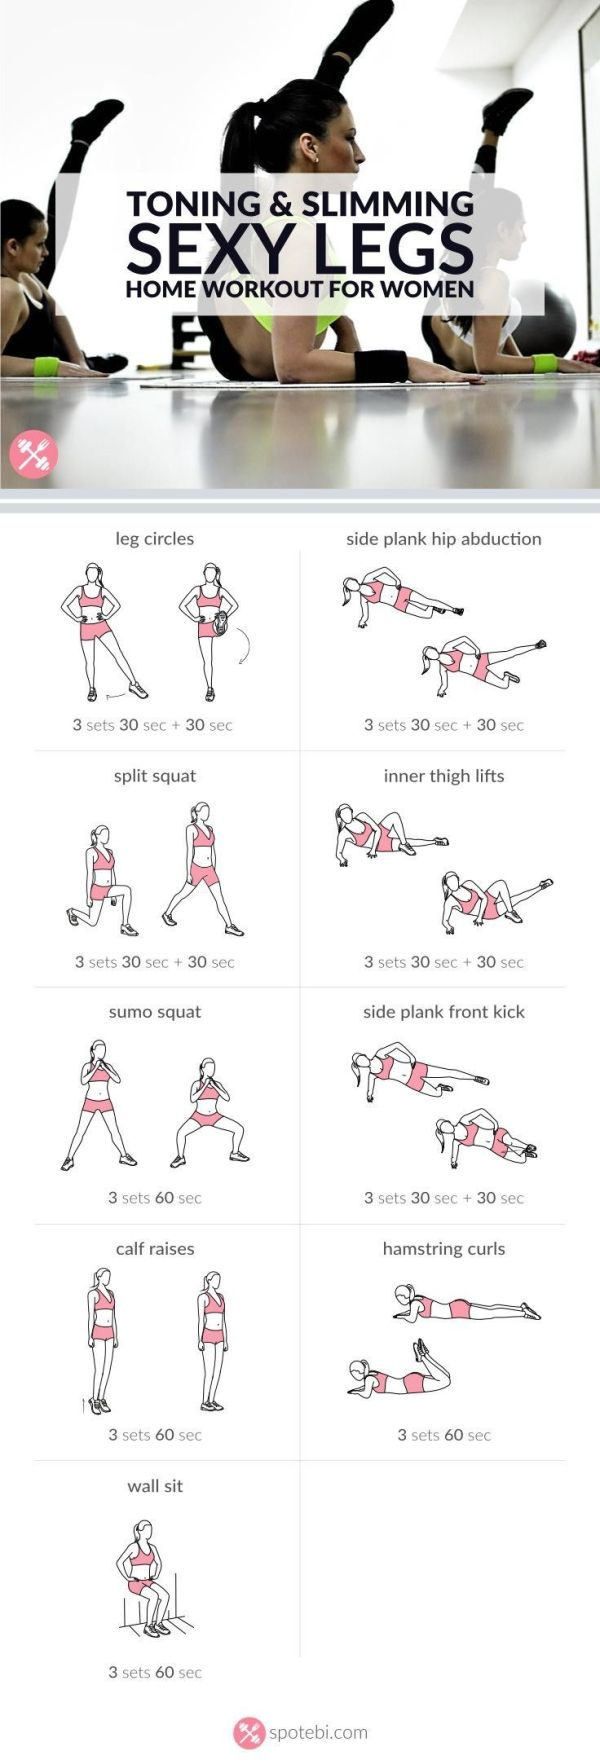 Get lean and strong with this sexy legs workout. 9 toning and slimming leg exerc...